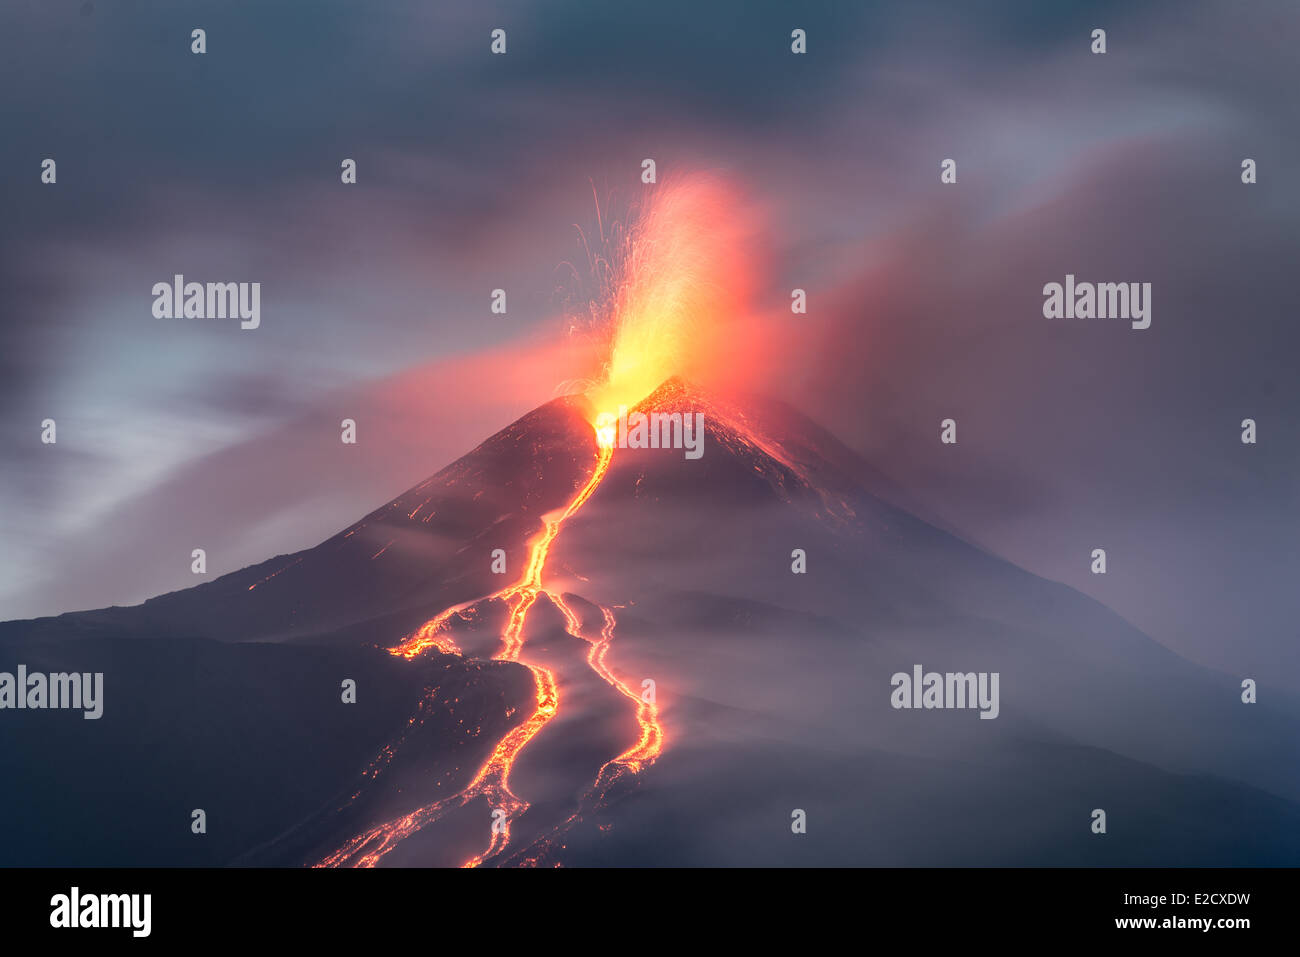 Lava flows from an eruption at Mt Etna volcano - Stock Image